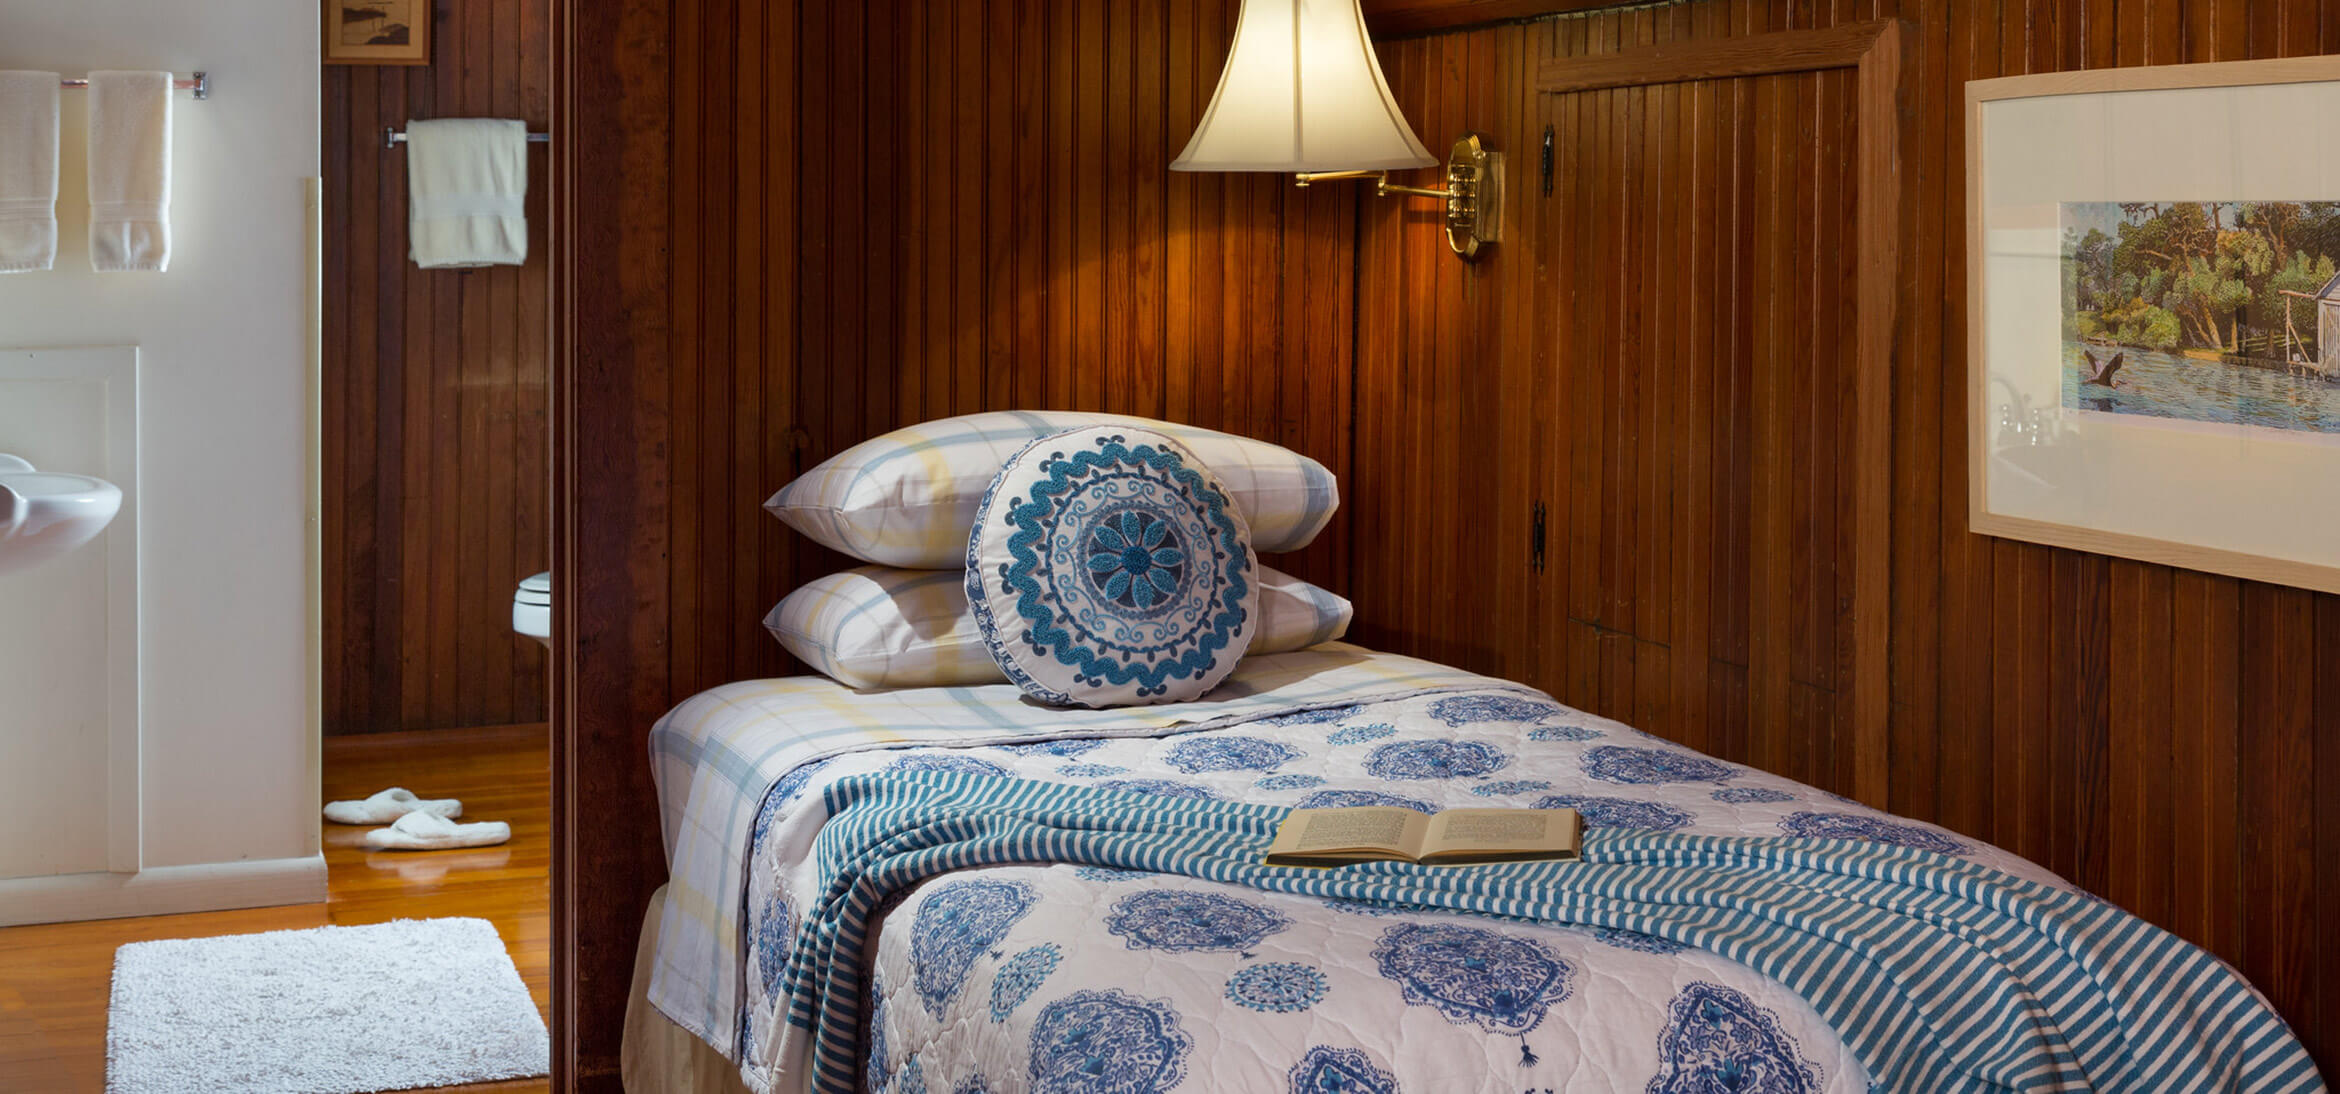 Cowen Room bed at our Fairhope, AL bed and breakfast